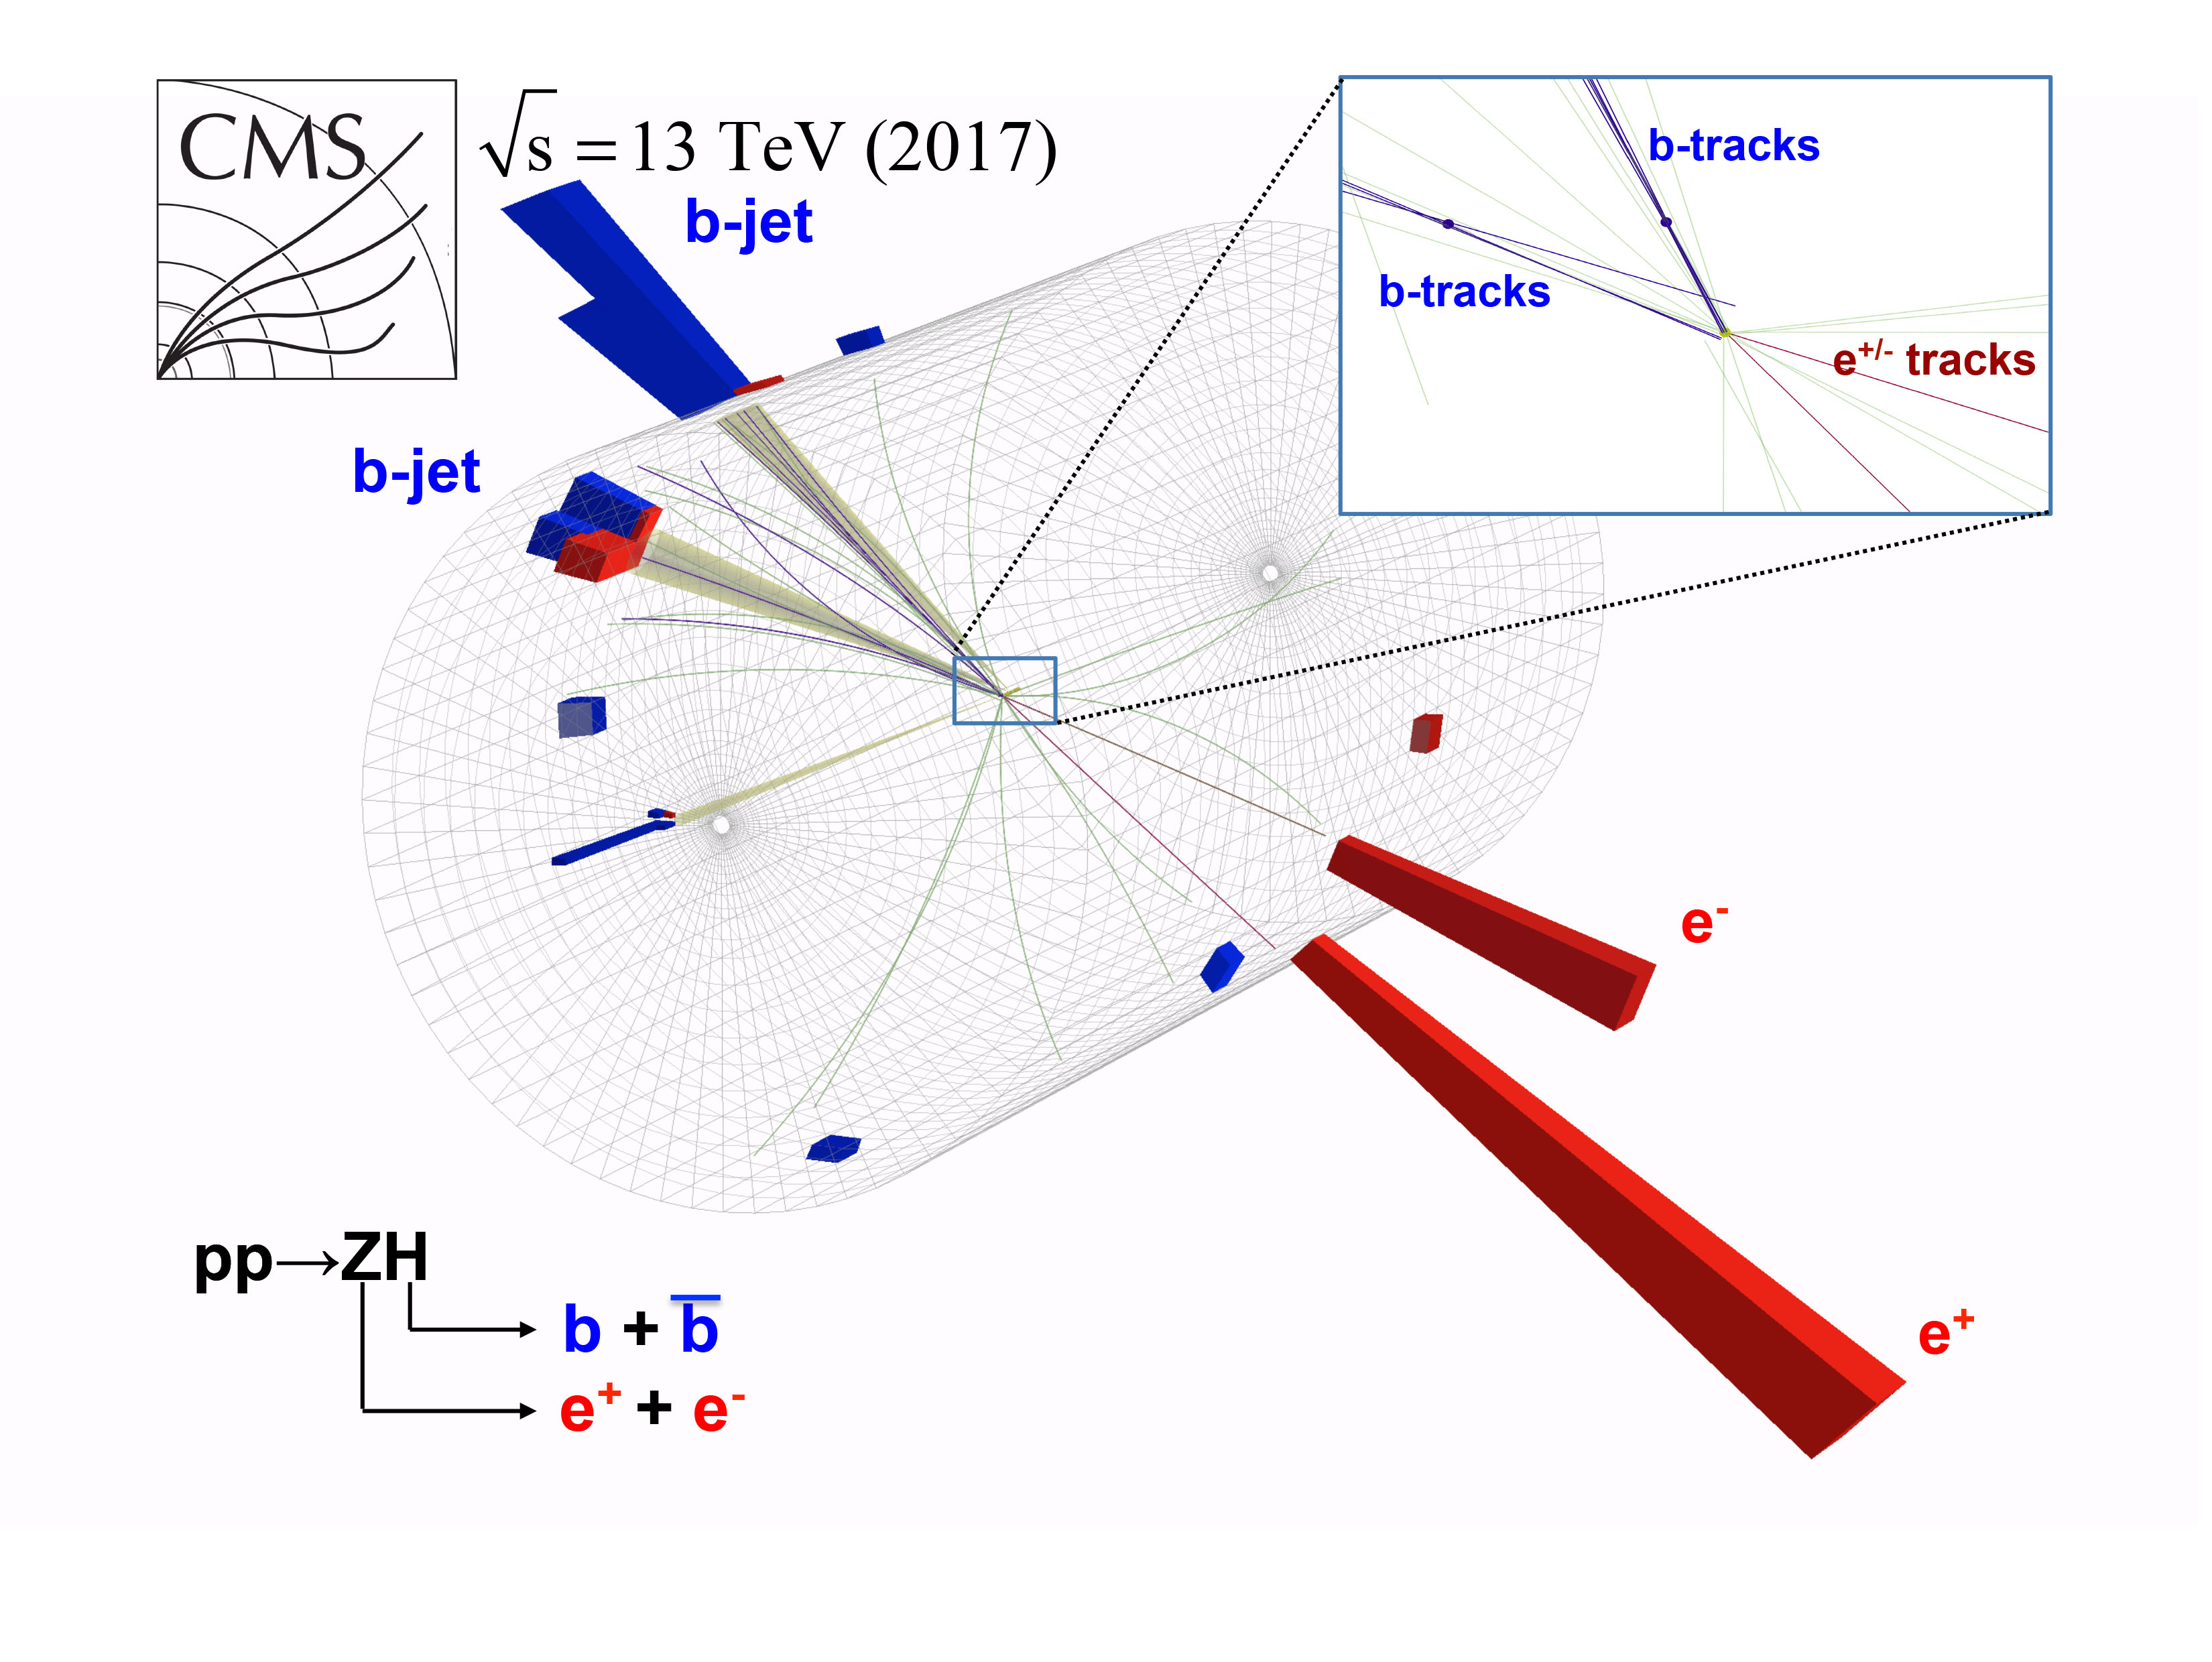 Paper on observation of Higgs boson decay to bottom quarks